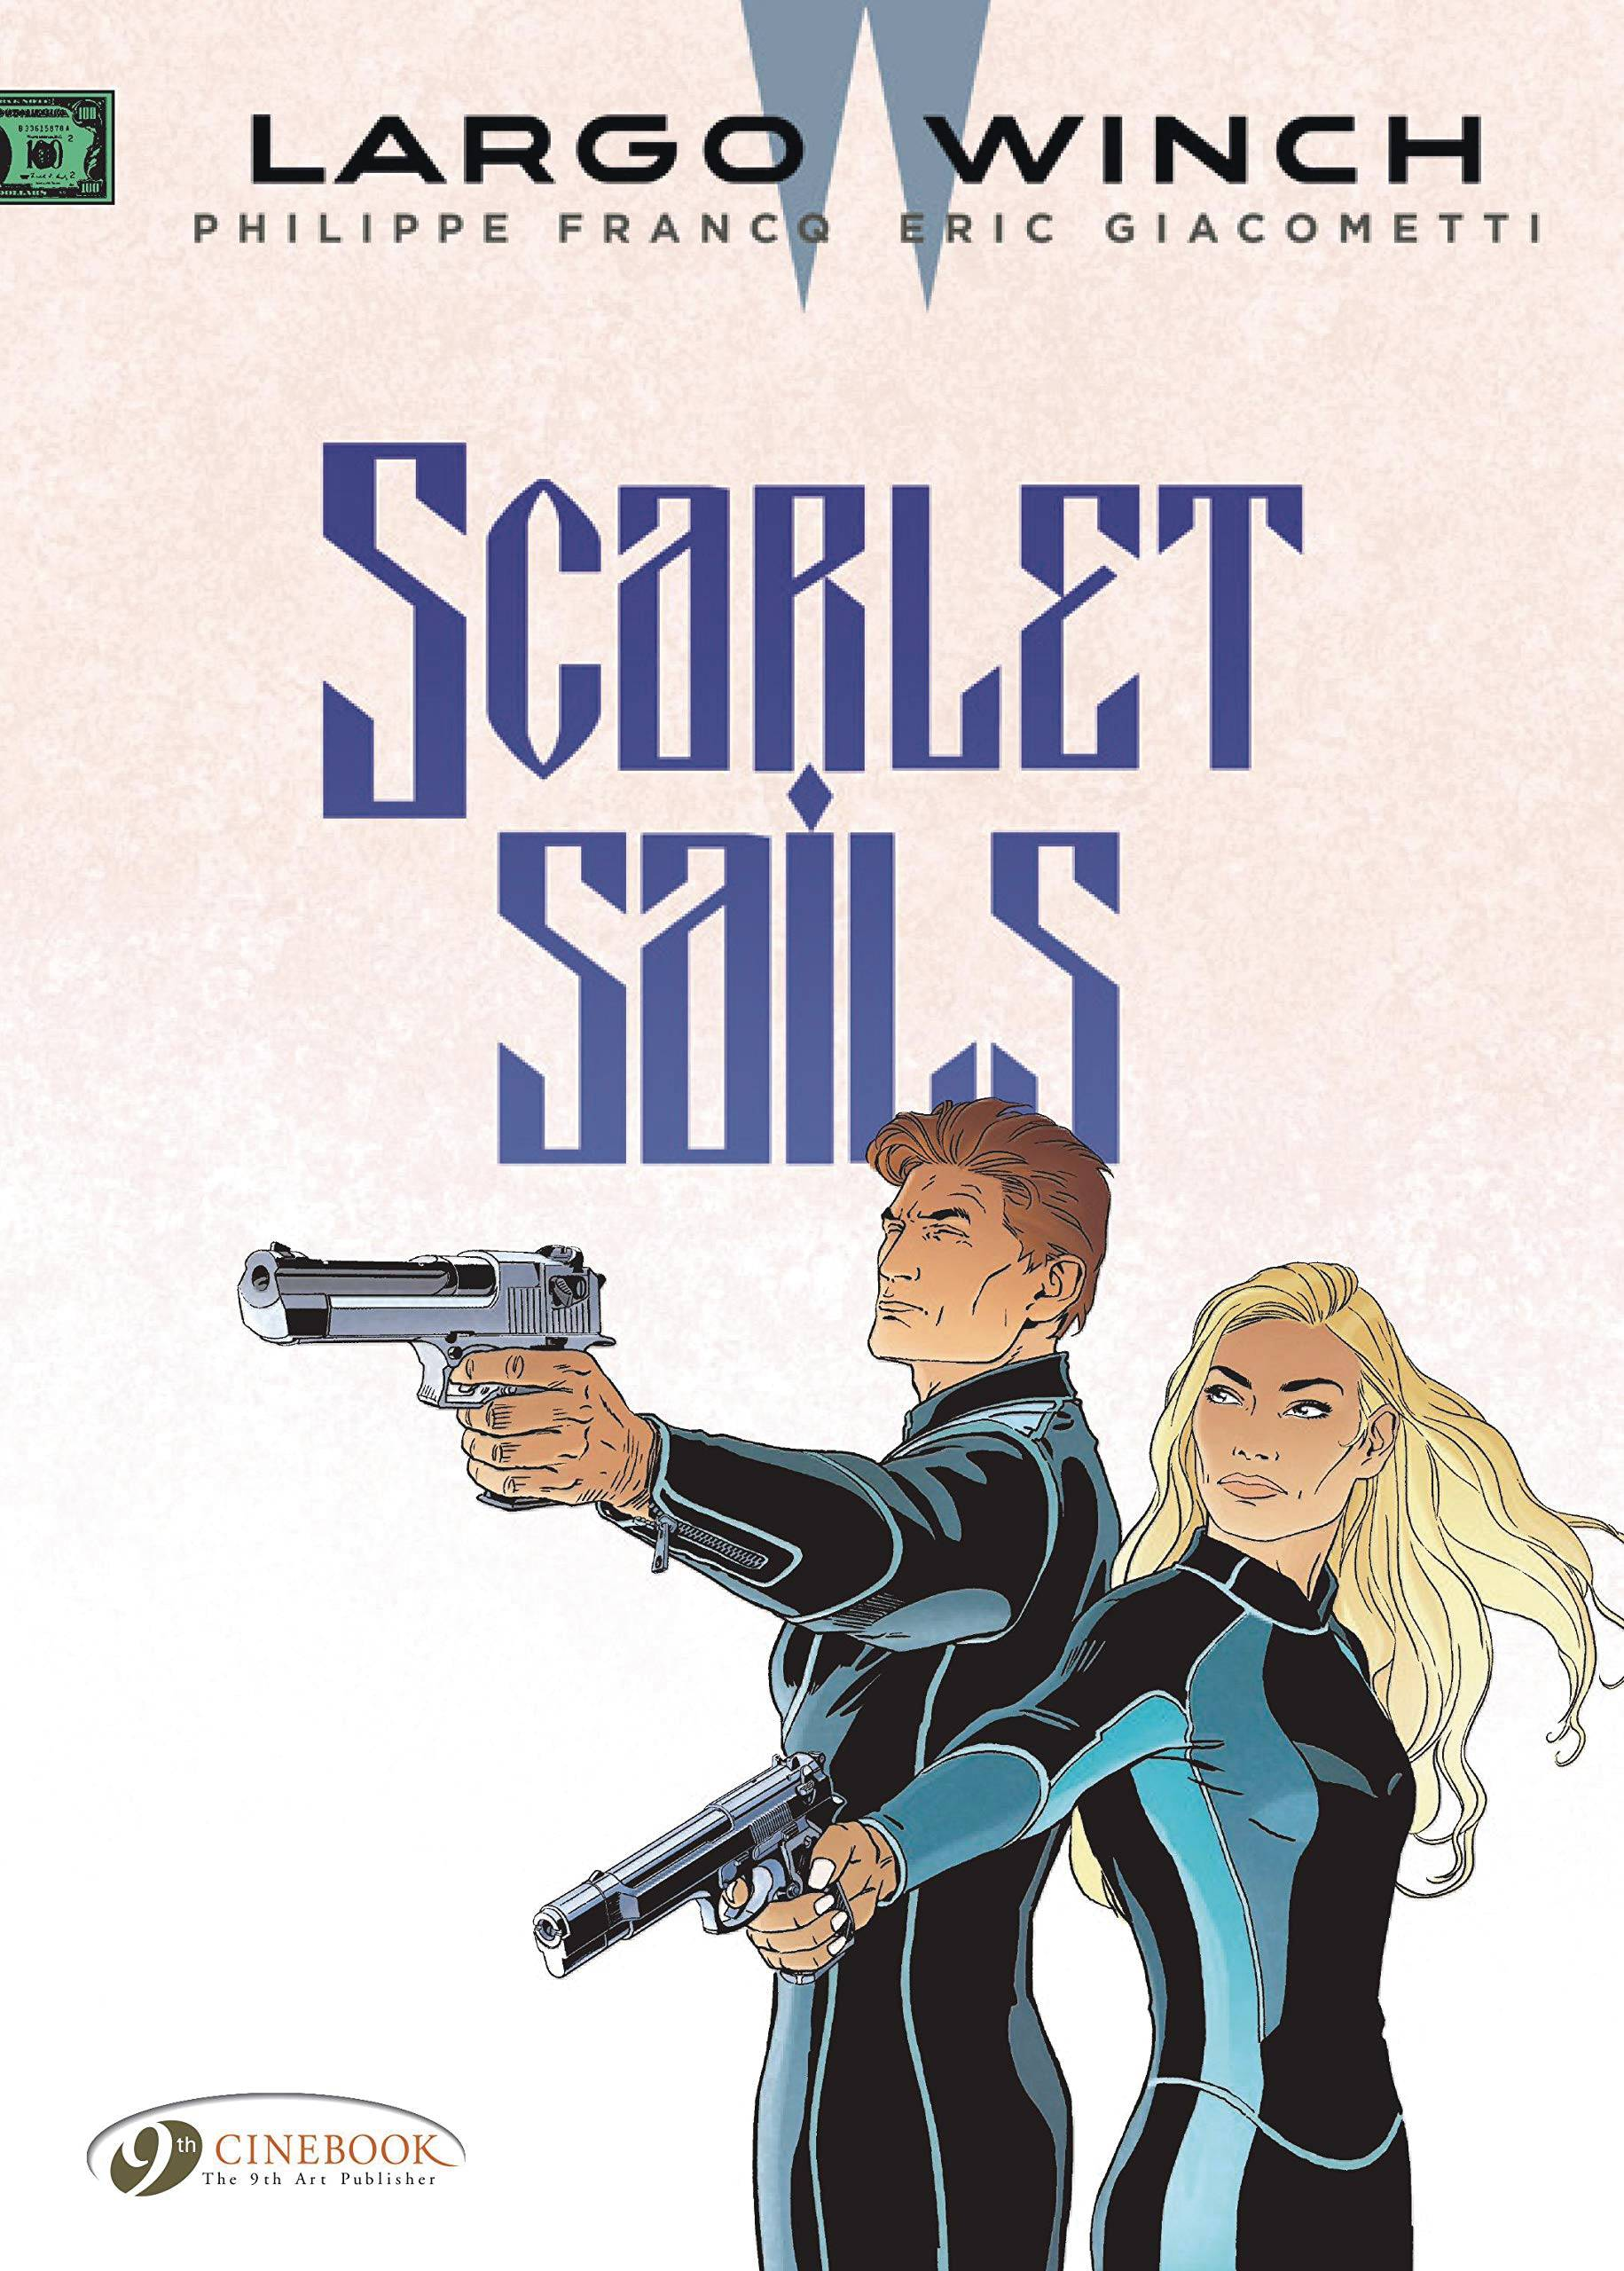 LARGO WINCH GN 18 SCARLET SAILS